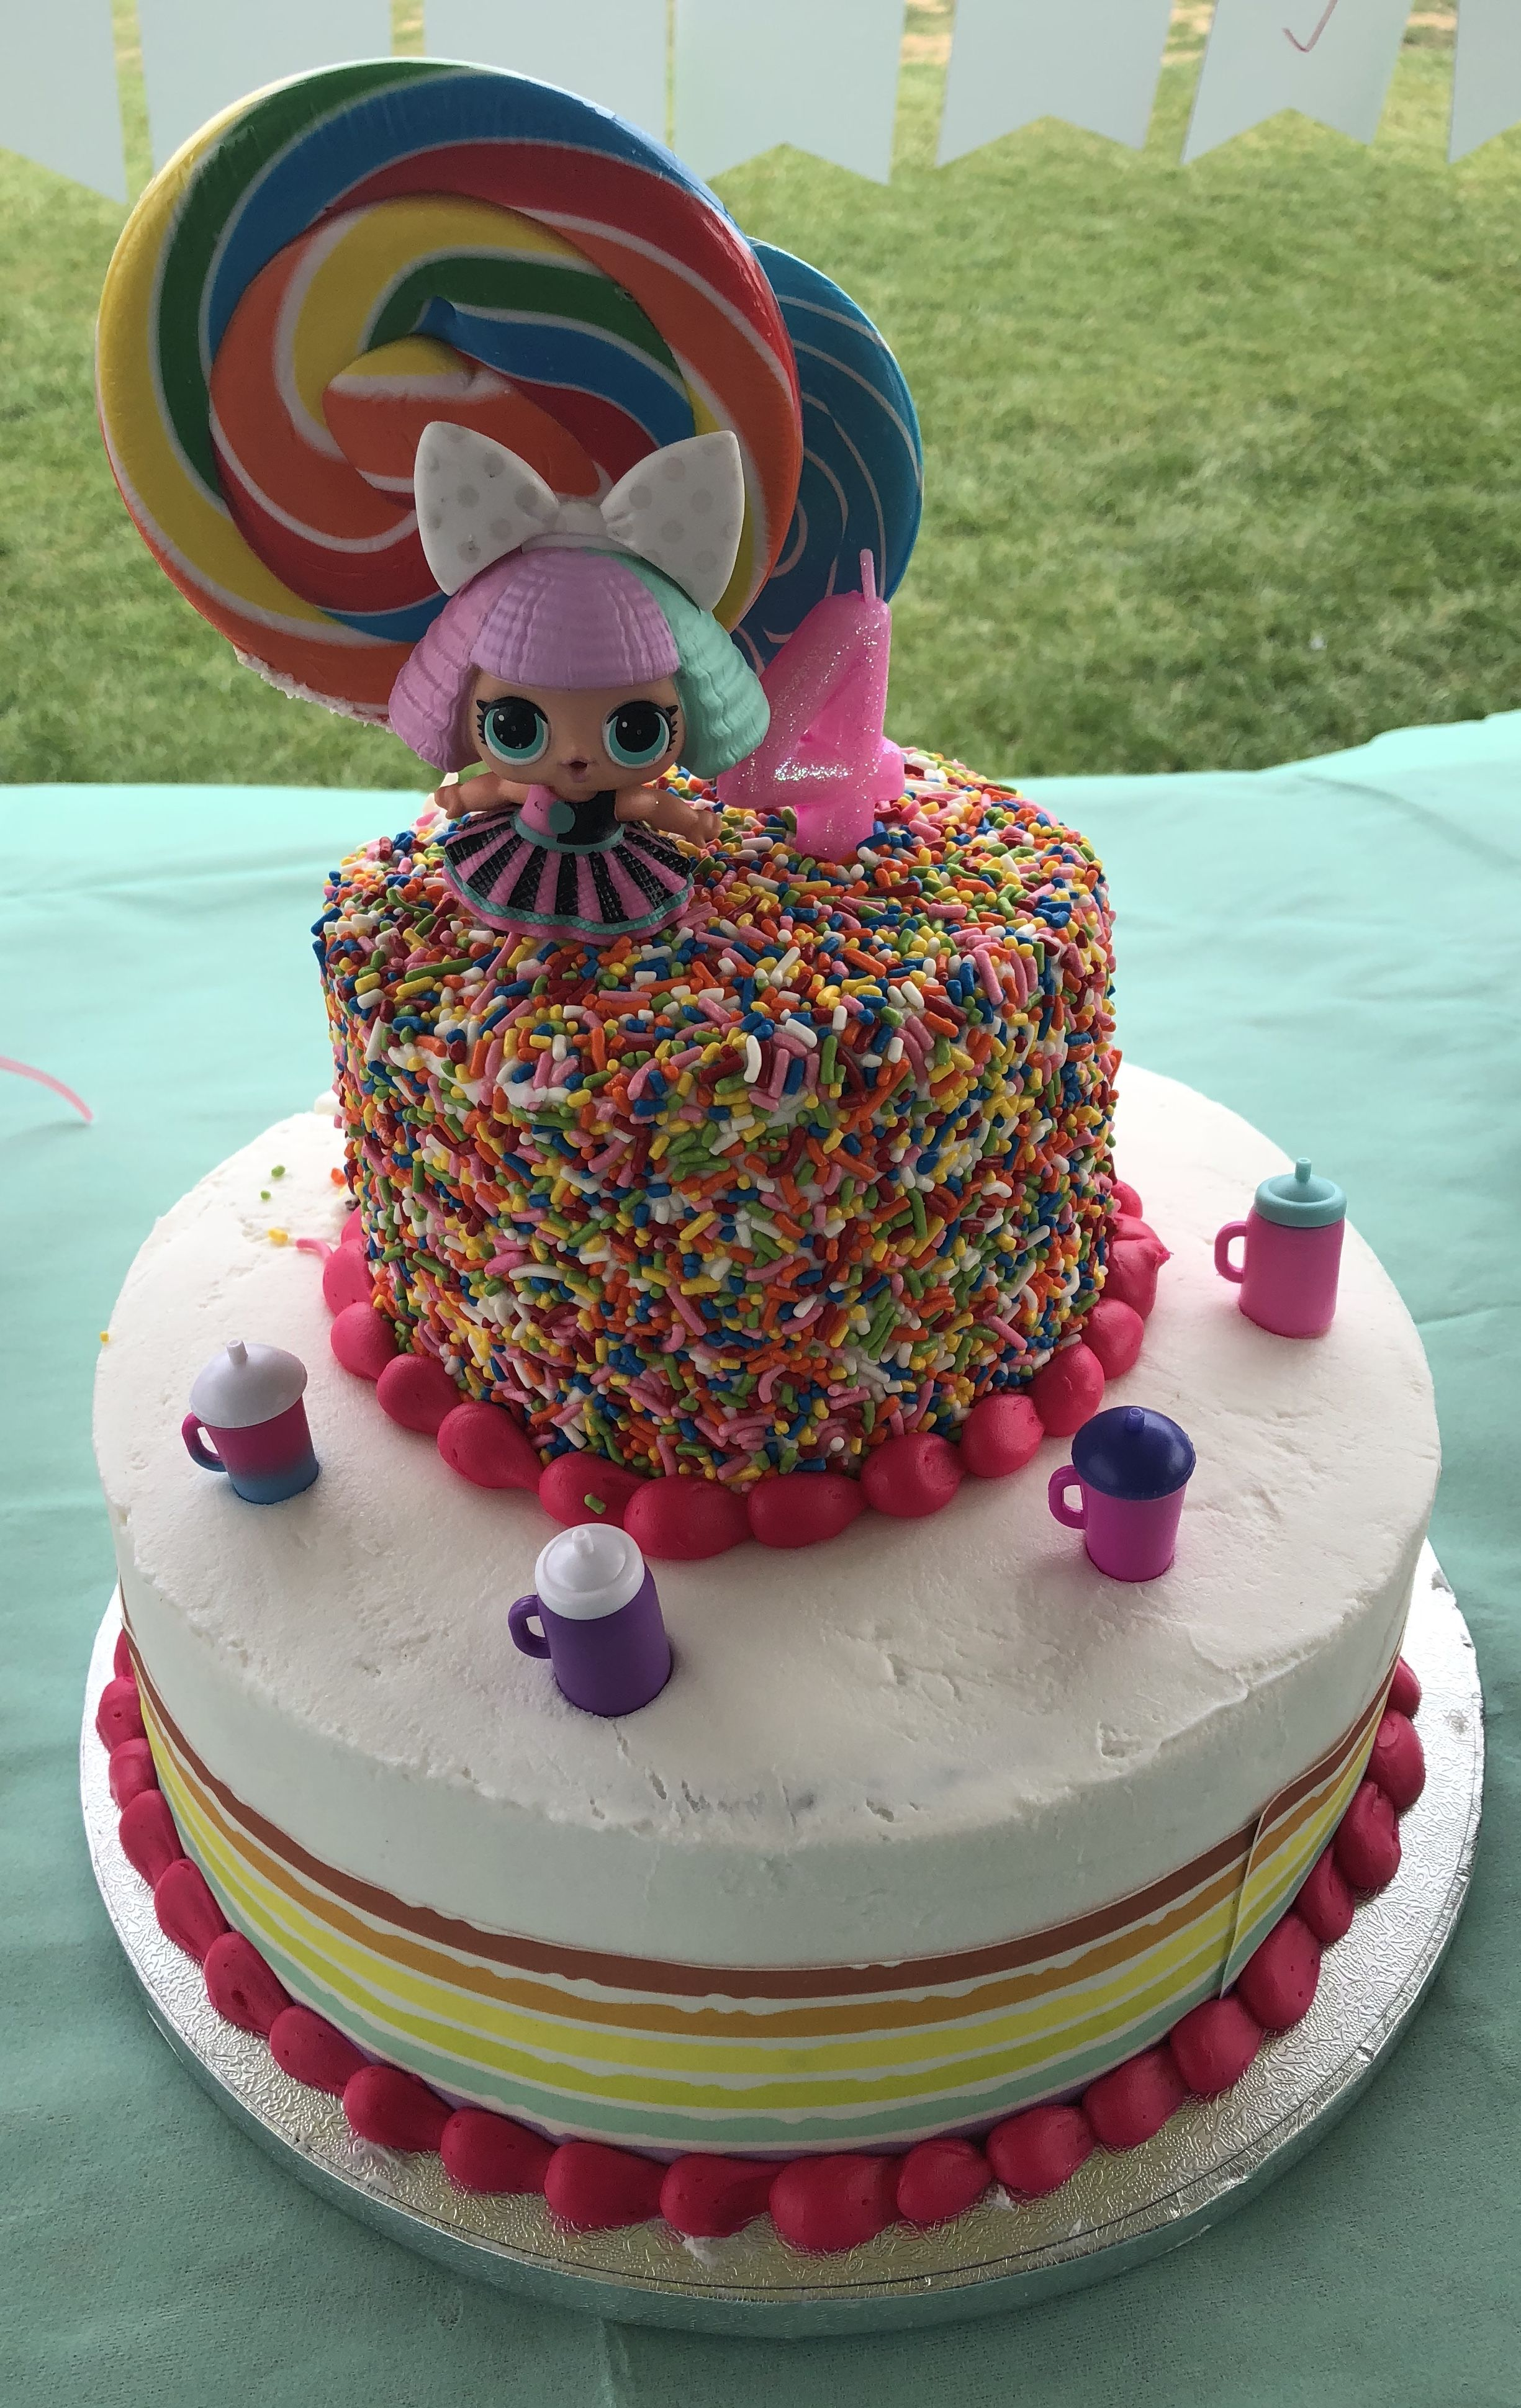 Strange Lol Surprise Doll Cake I Had This 2 Tier Cake Made At Sams Club Funny Birthday Cards Online Alyptdamsfinfo